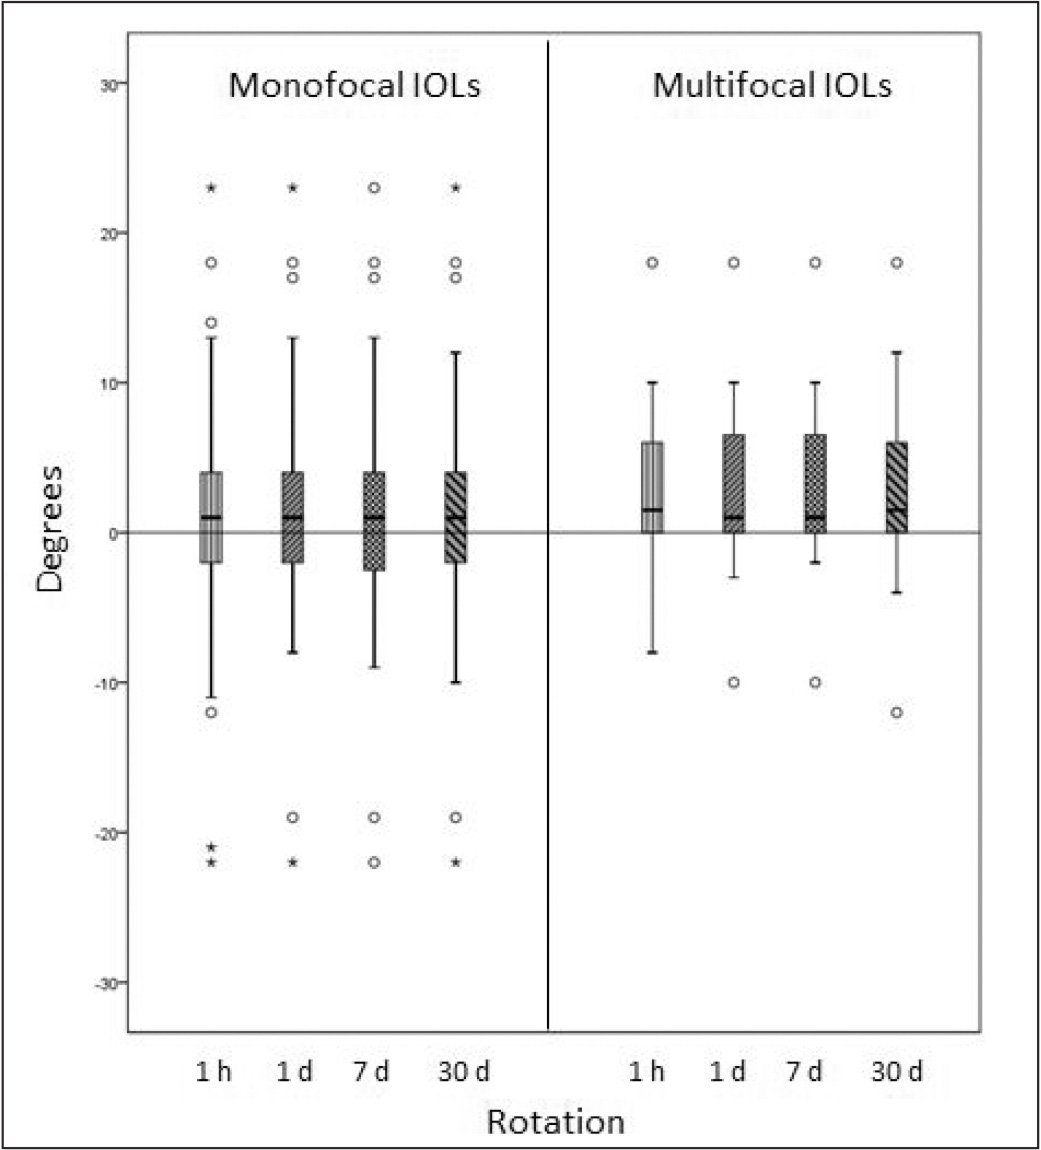 Box and whiskers plot of rotation of monofocal toric intraocular lenses (IOLs) (n = 63) and multifocal toric IOLs (n = 28) at each follow-up visit. Values are represented as median and quartiles.